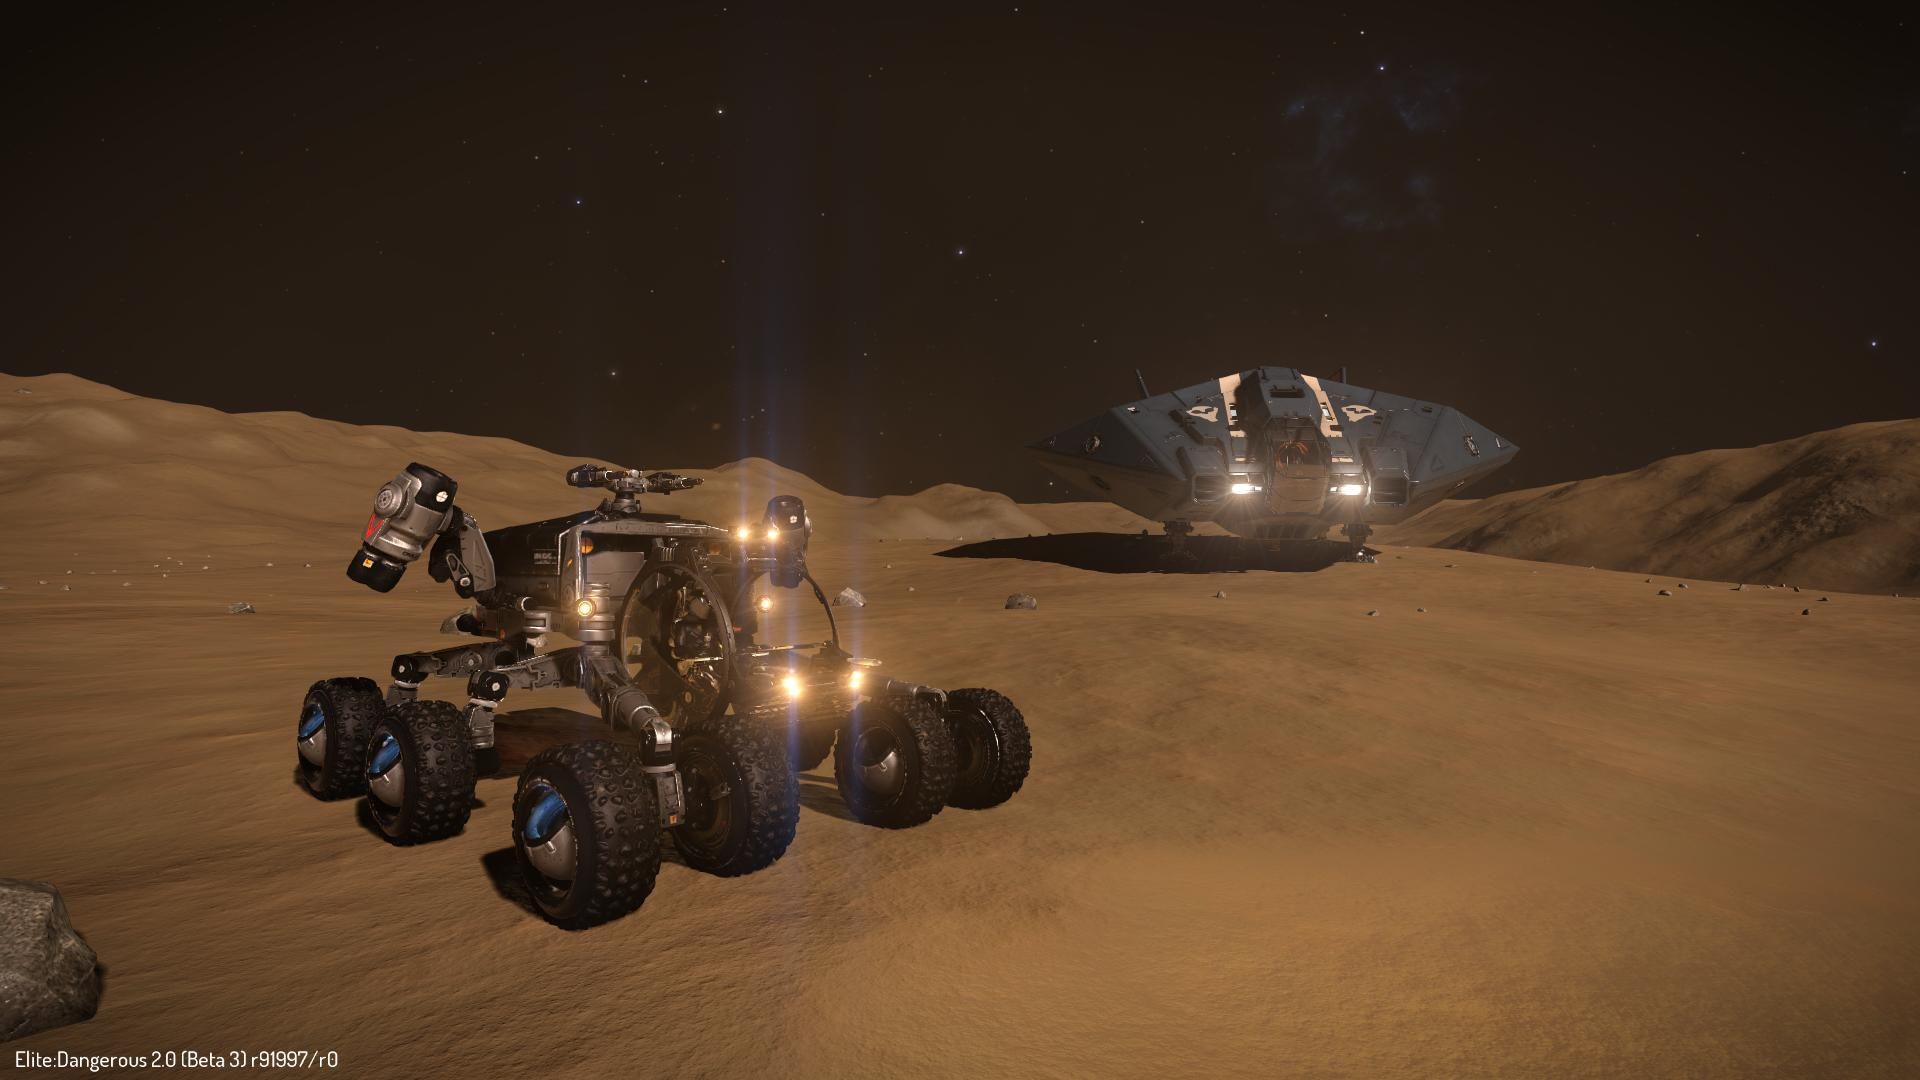 Stop waiting for those other space games, Elite: Dangerous